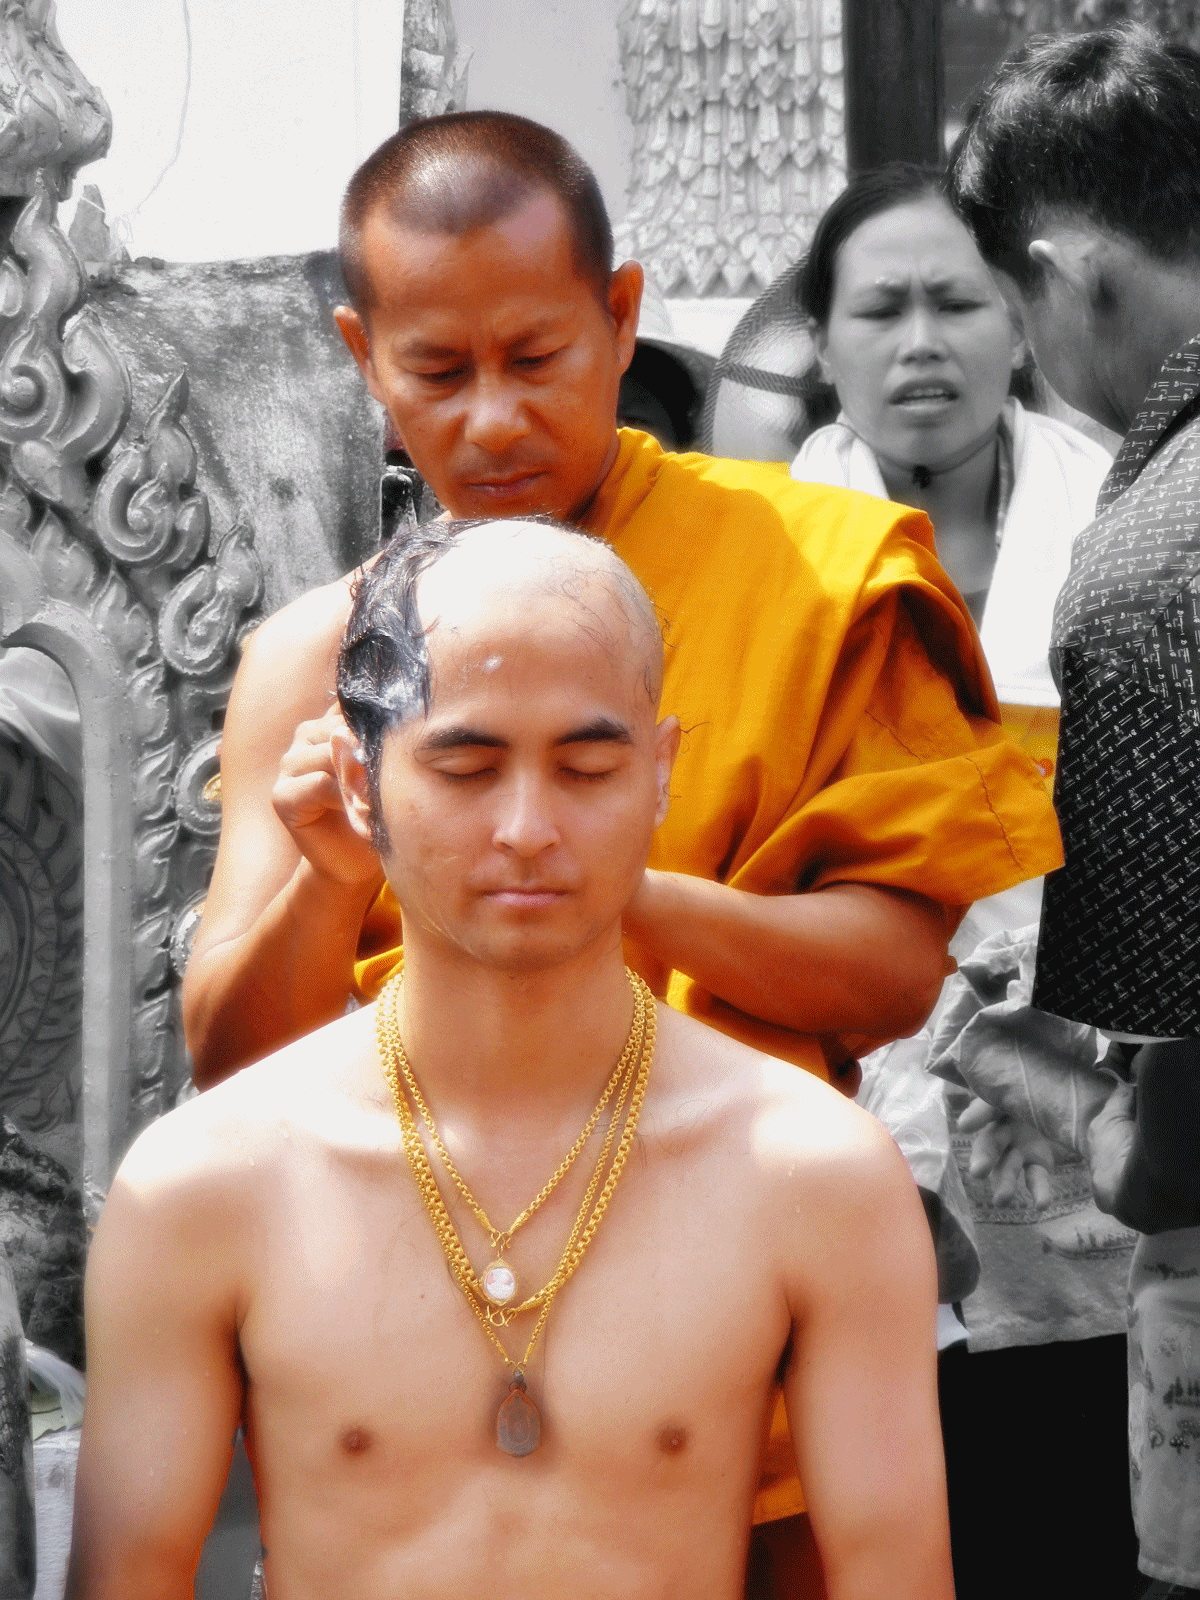 Thai woman gives buddhist monk a blowjob - 5 9